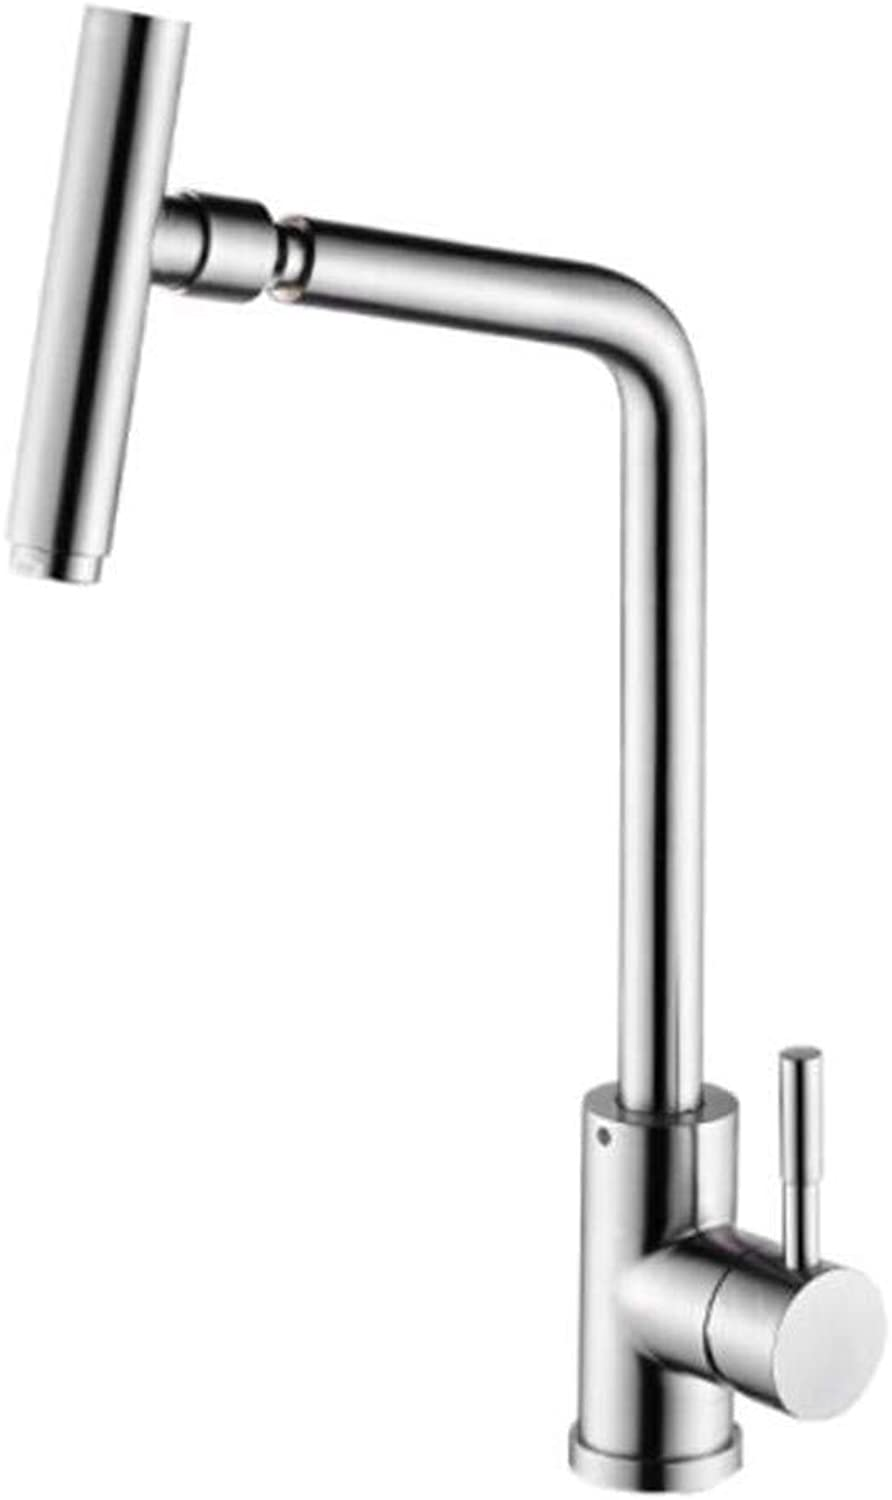 Faucet Waste Mono Spoutkitchen Dishwash Basin Cold and Hot Stainless Steel Sink Dishwash Basin Wire Drawing Can redate